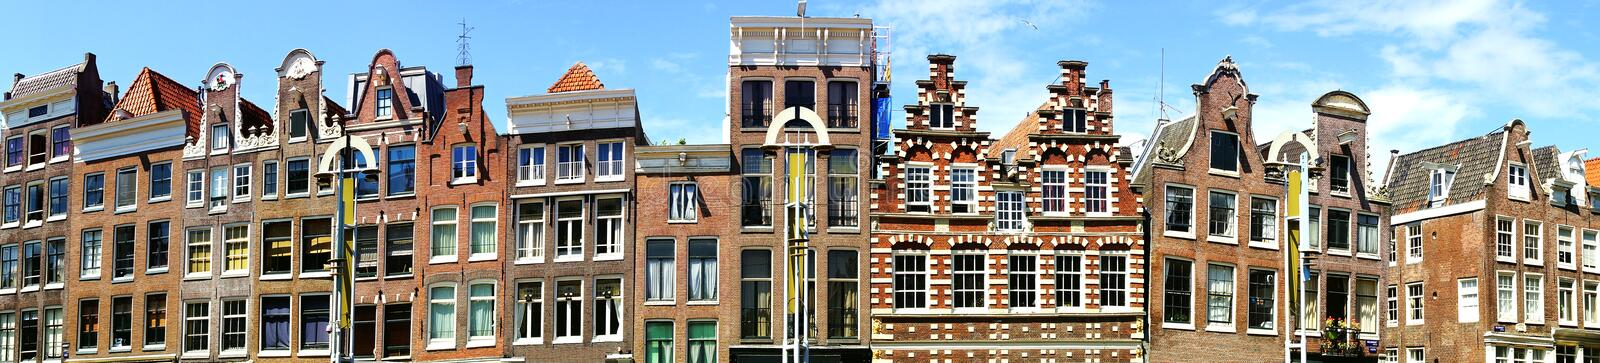 Maisons traditionnelles d'Amsterdam. image stock